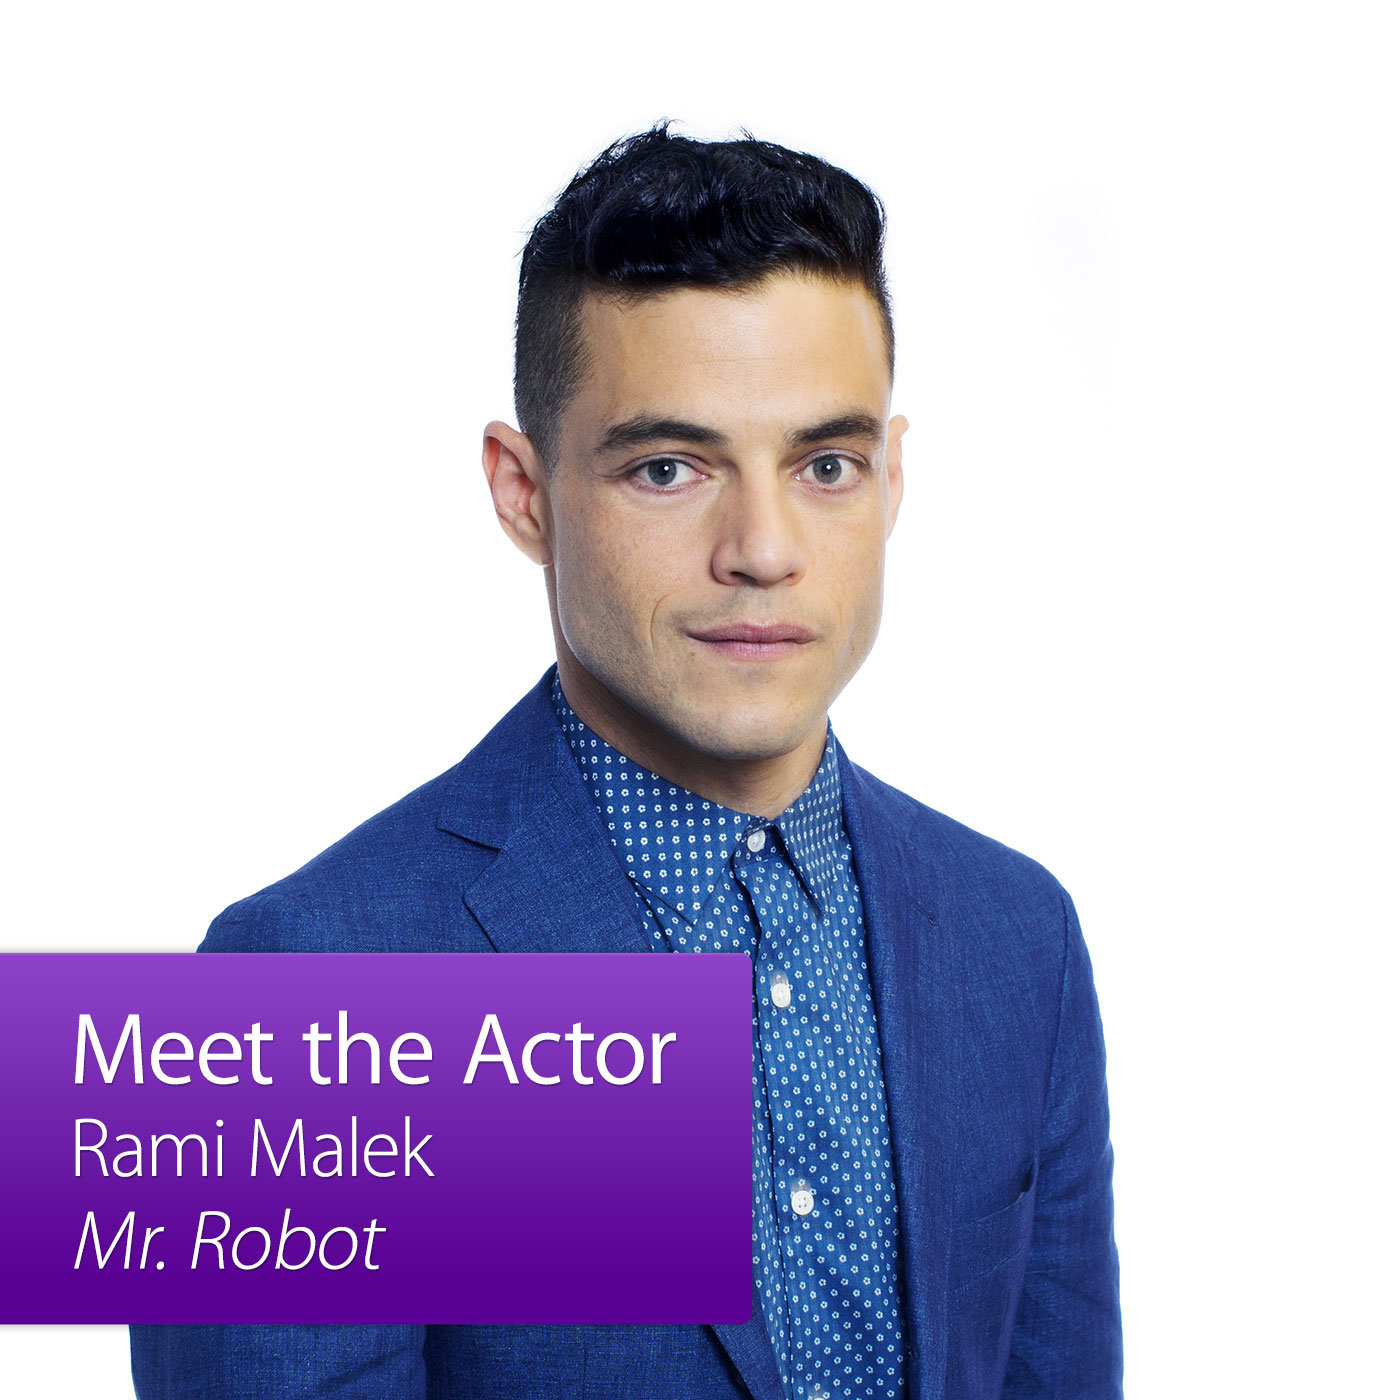 Mr. Robot: Meet the Actor